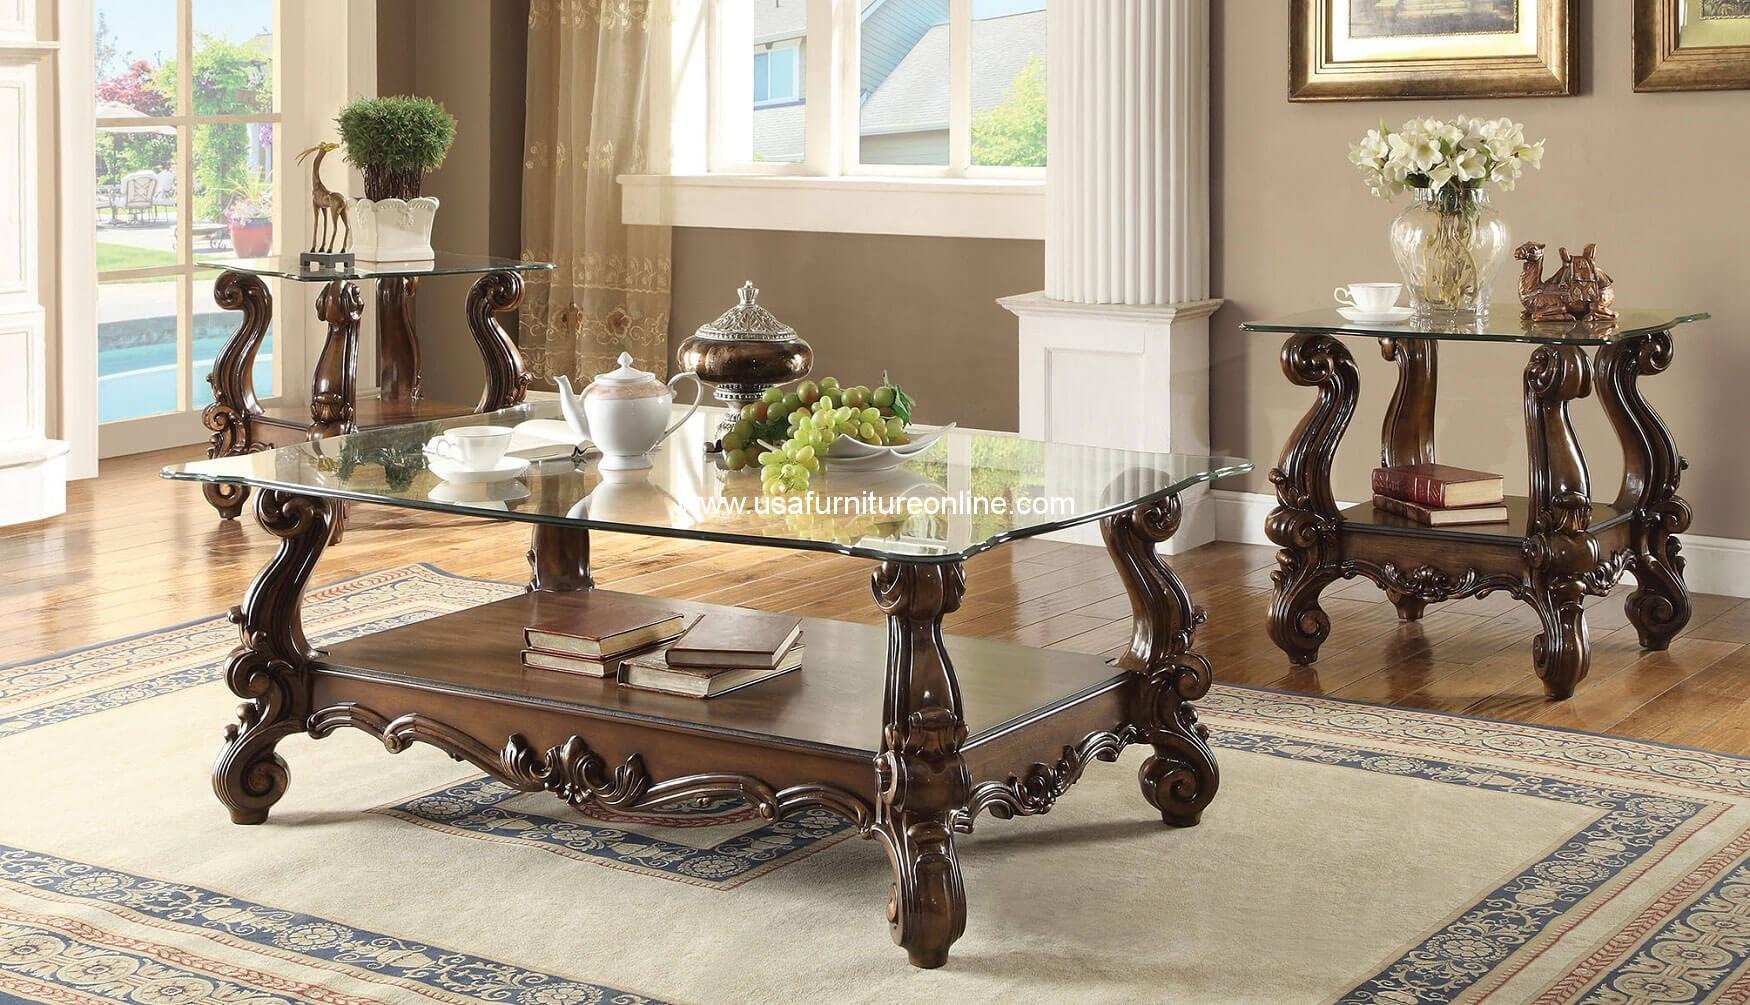 3 piece acme versailles glass top coffee table set cherry oak finish